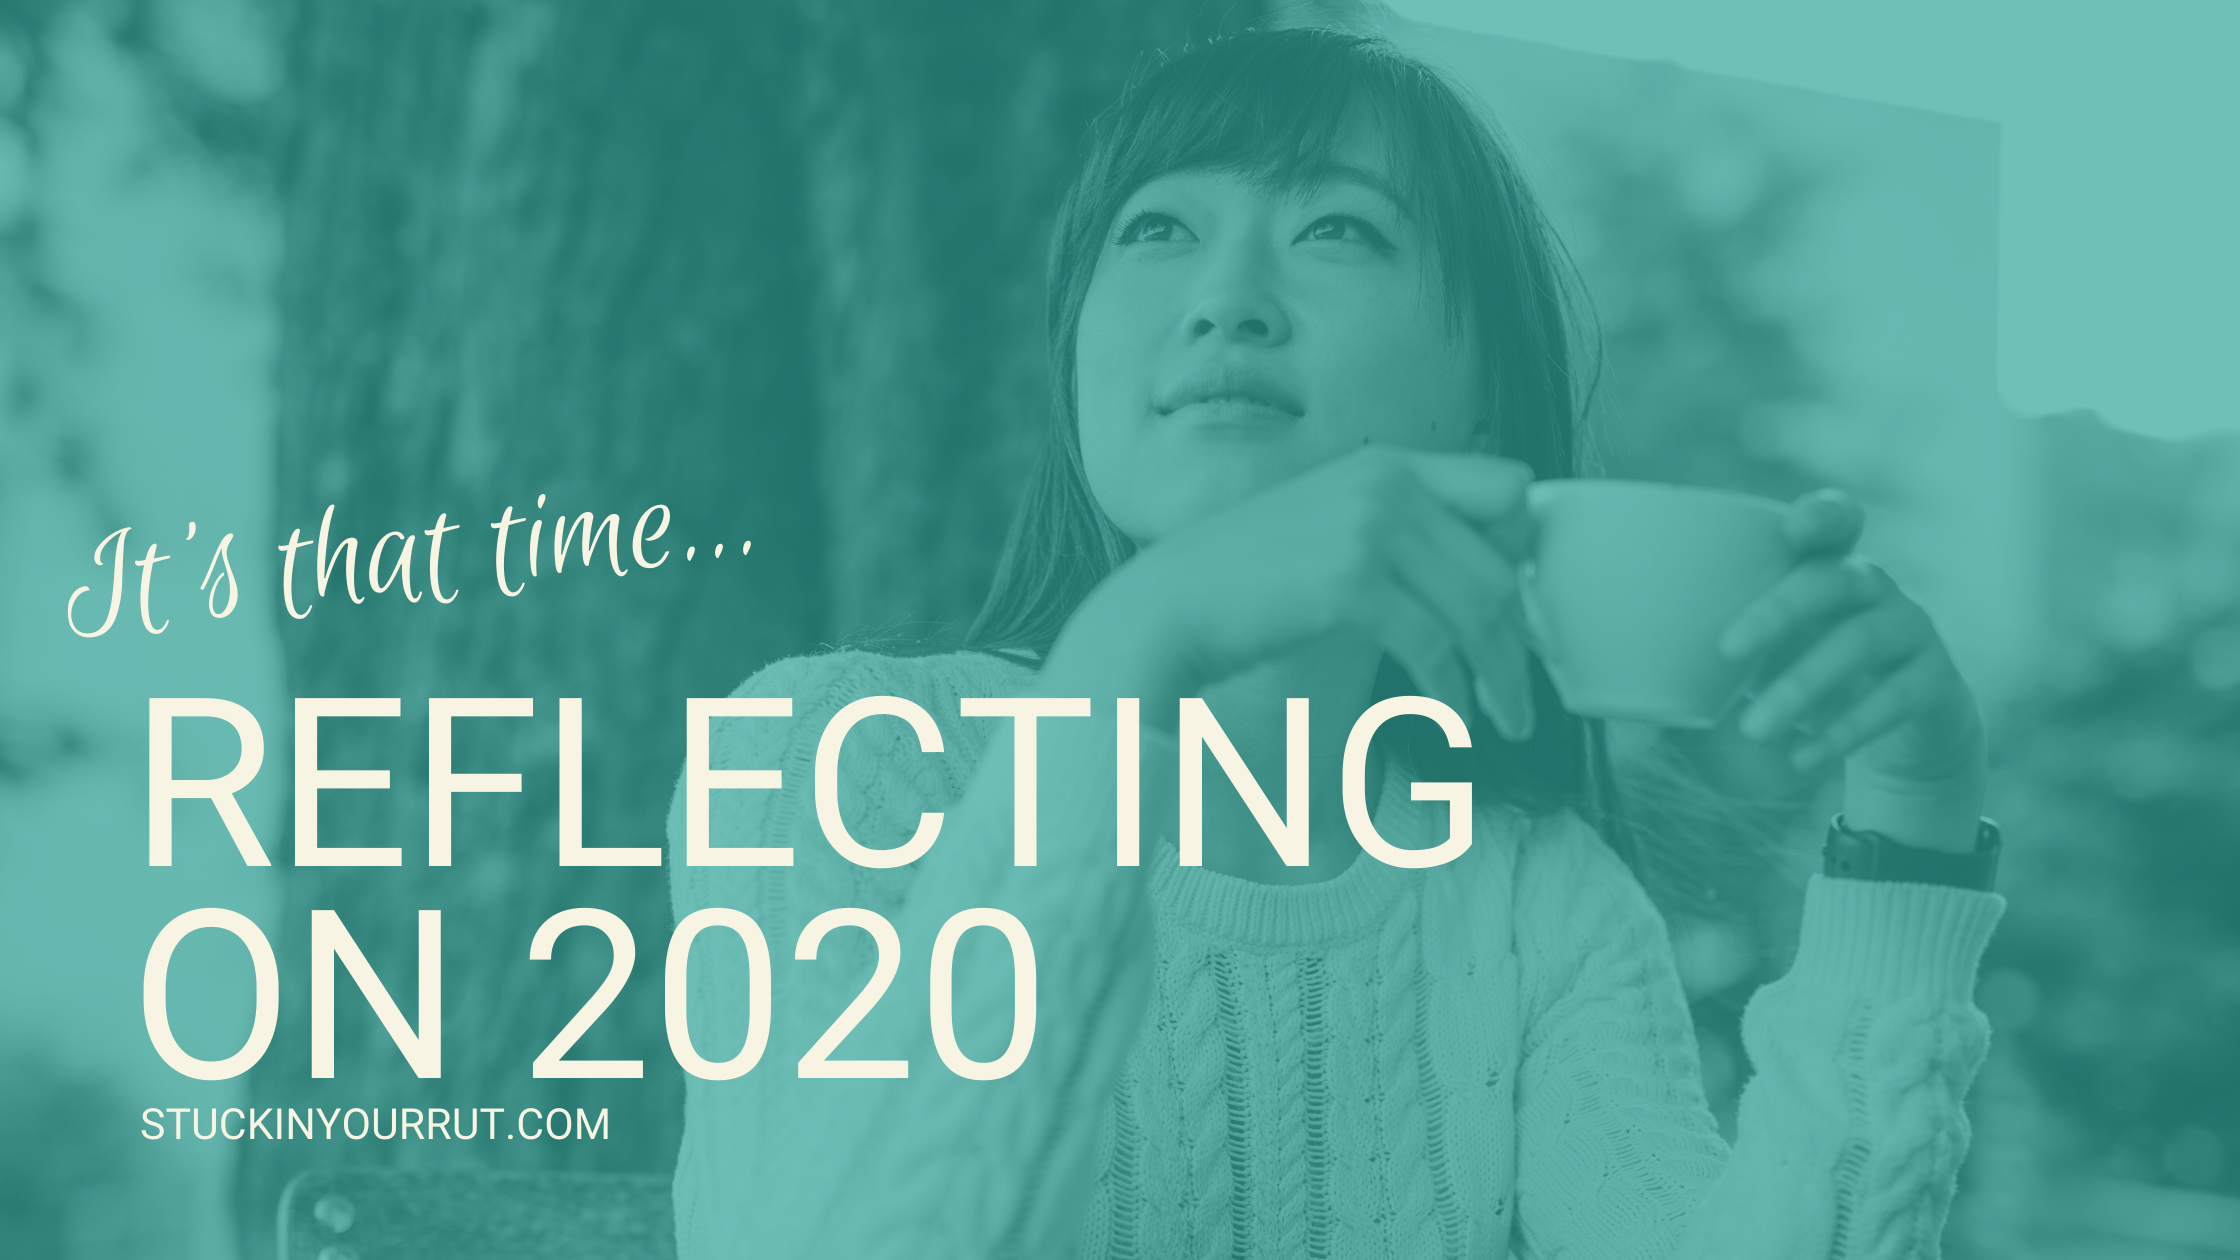 how to reflect on 2020